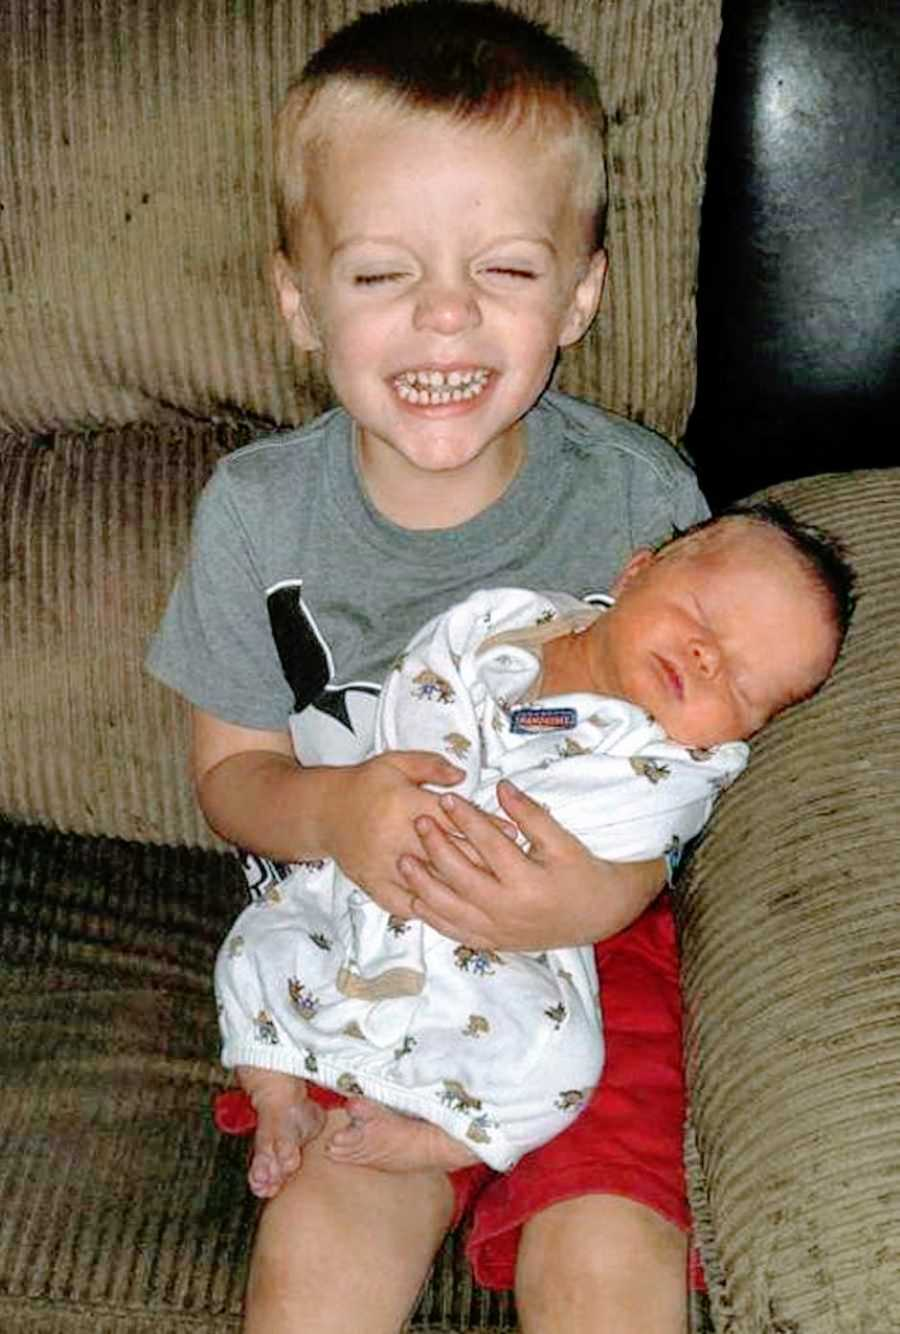 Little boy sitting on a brown couch holds newborn baby brother with a big smile